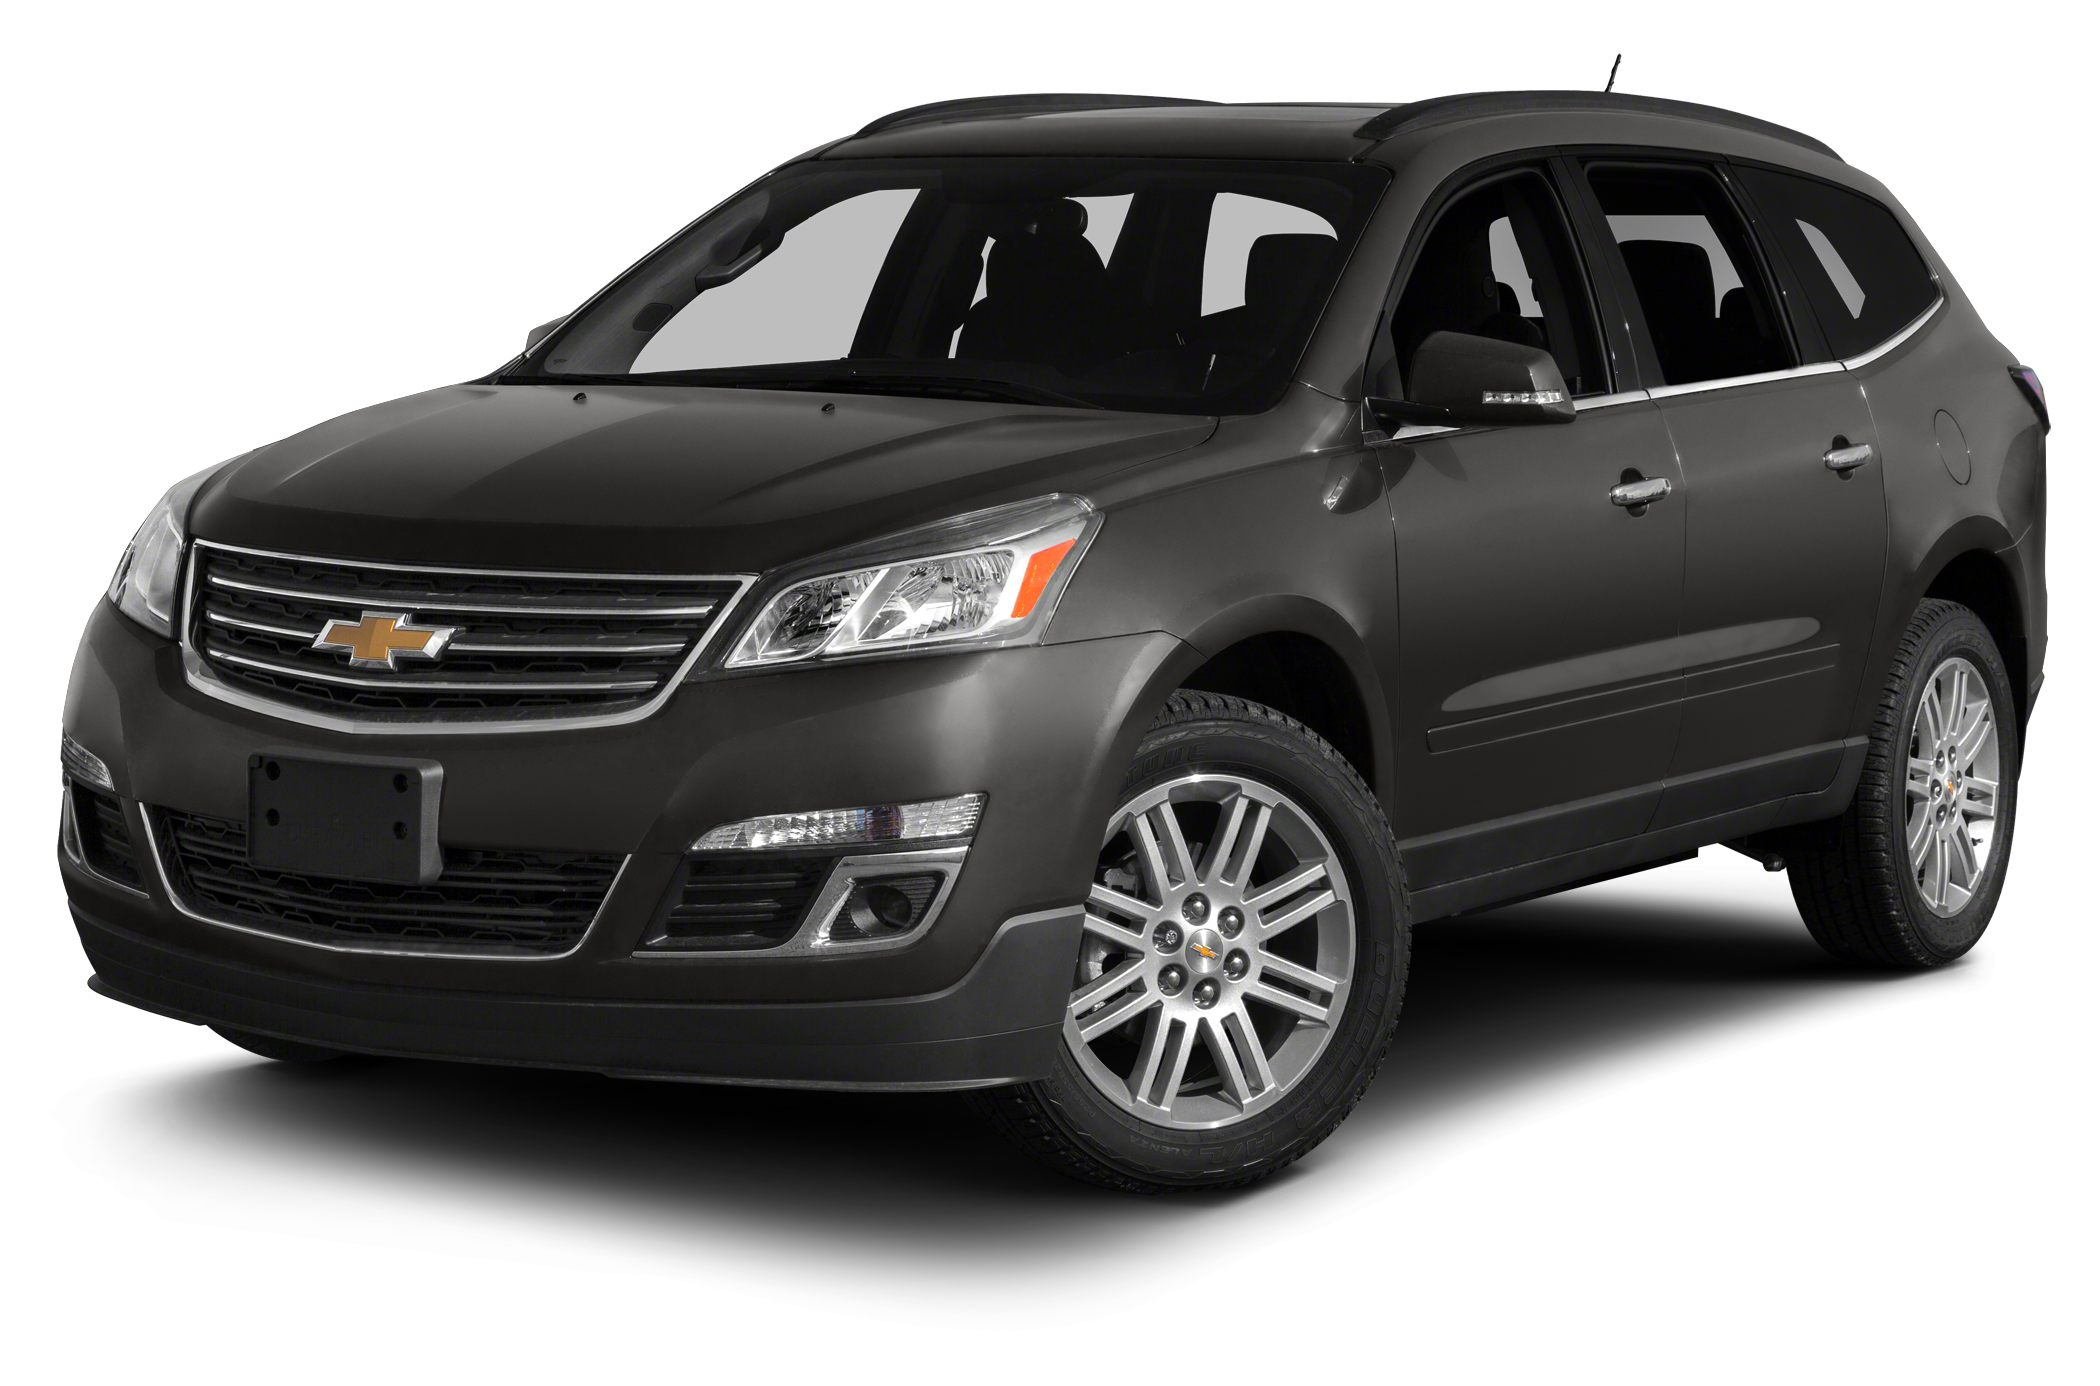 2014 Chevrolet Traverse 2LT SUV for sale in Fayetteville for $28,473 with 33,654 miles.